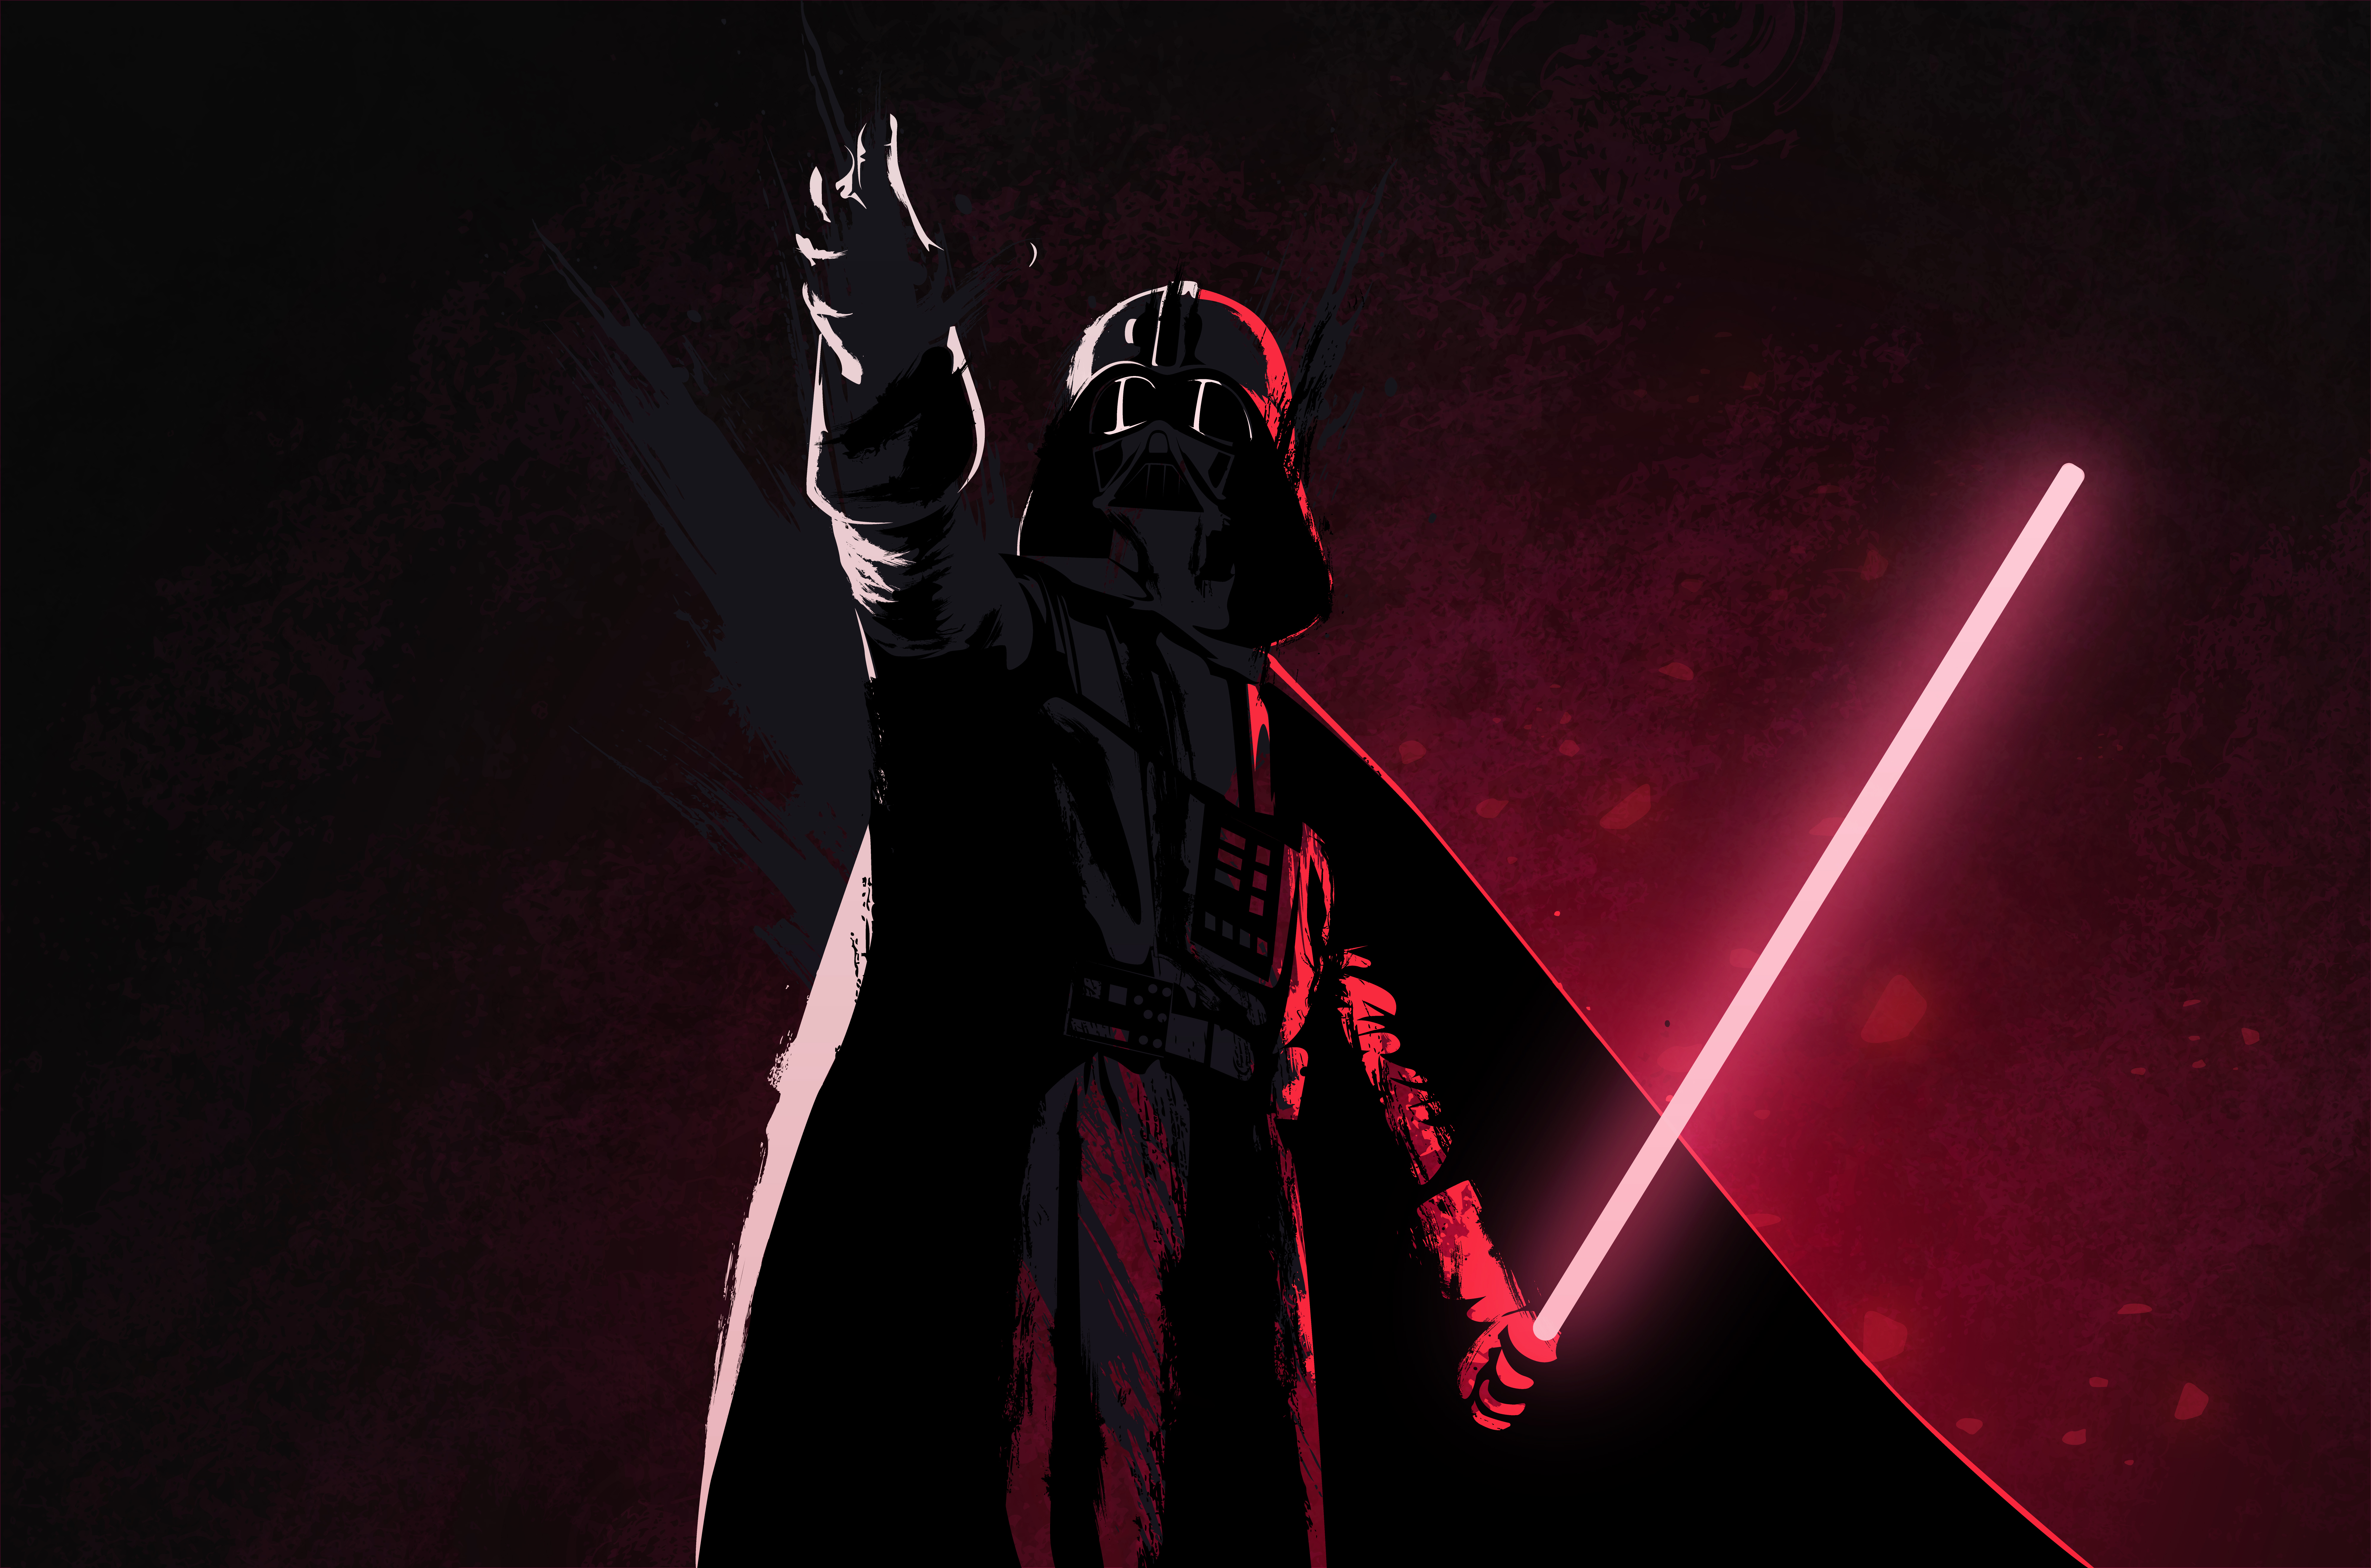 8k Darth Vader Hd Movies 4k Wallpapers Images Backgrounds Photos And Pictures